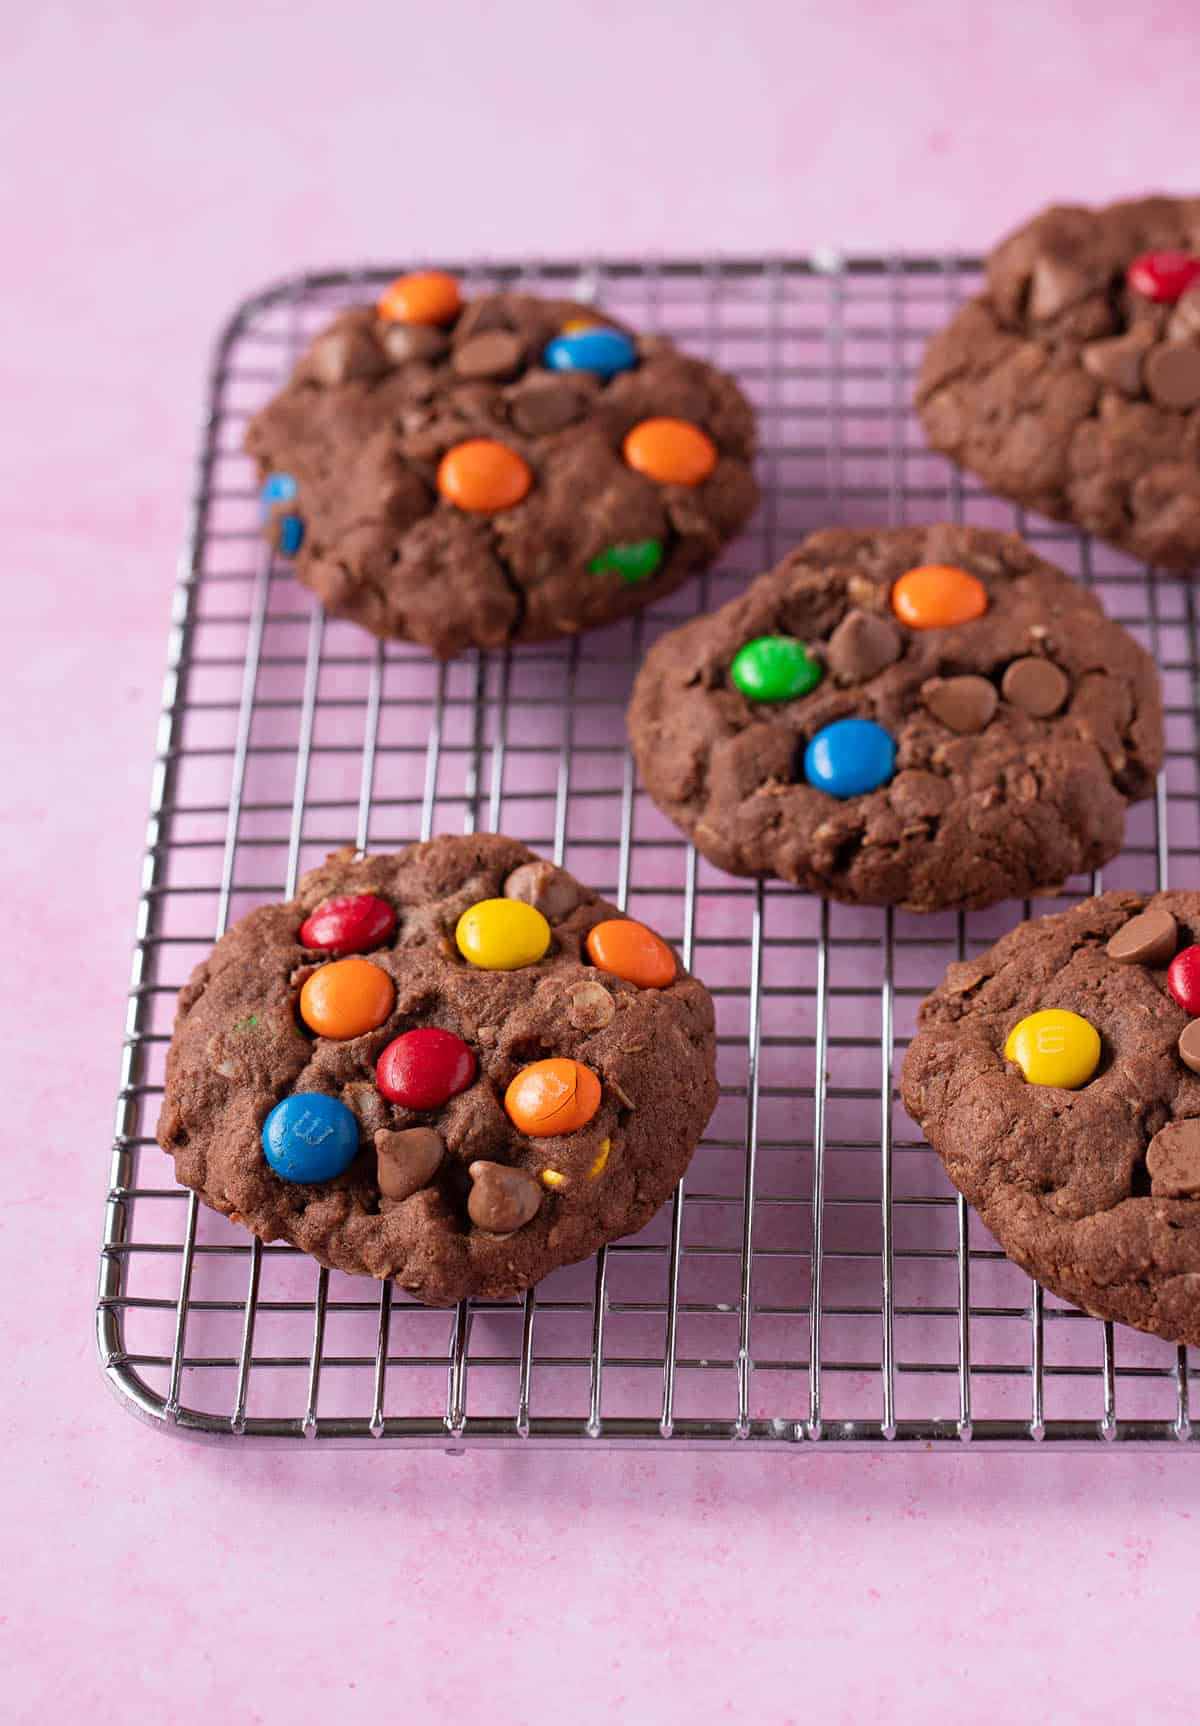 Chocolate Monster Cookies fresh out of the oven on a cooling rack